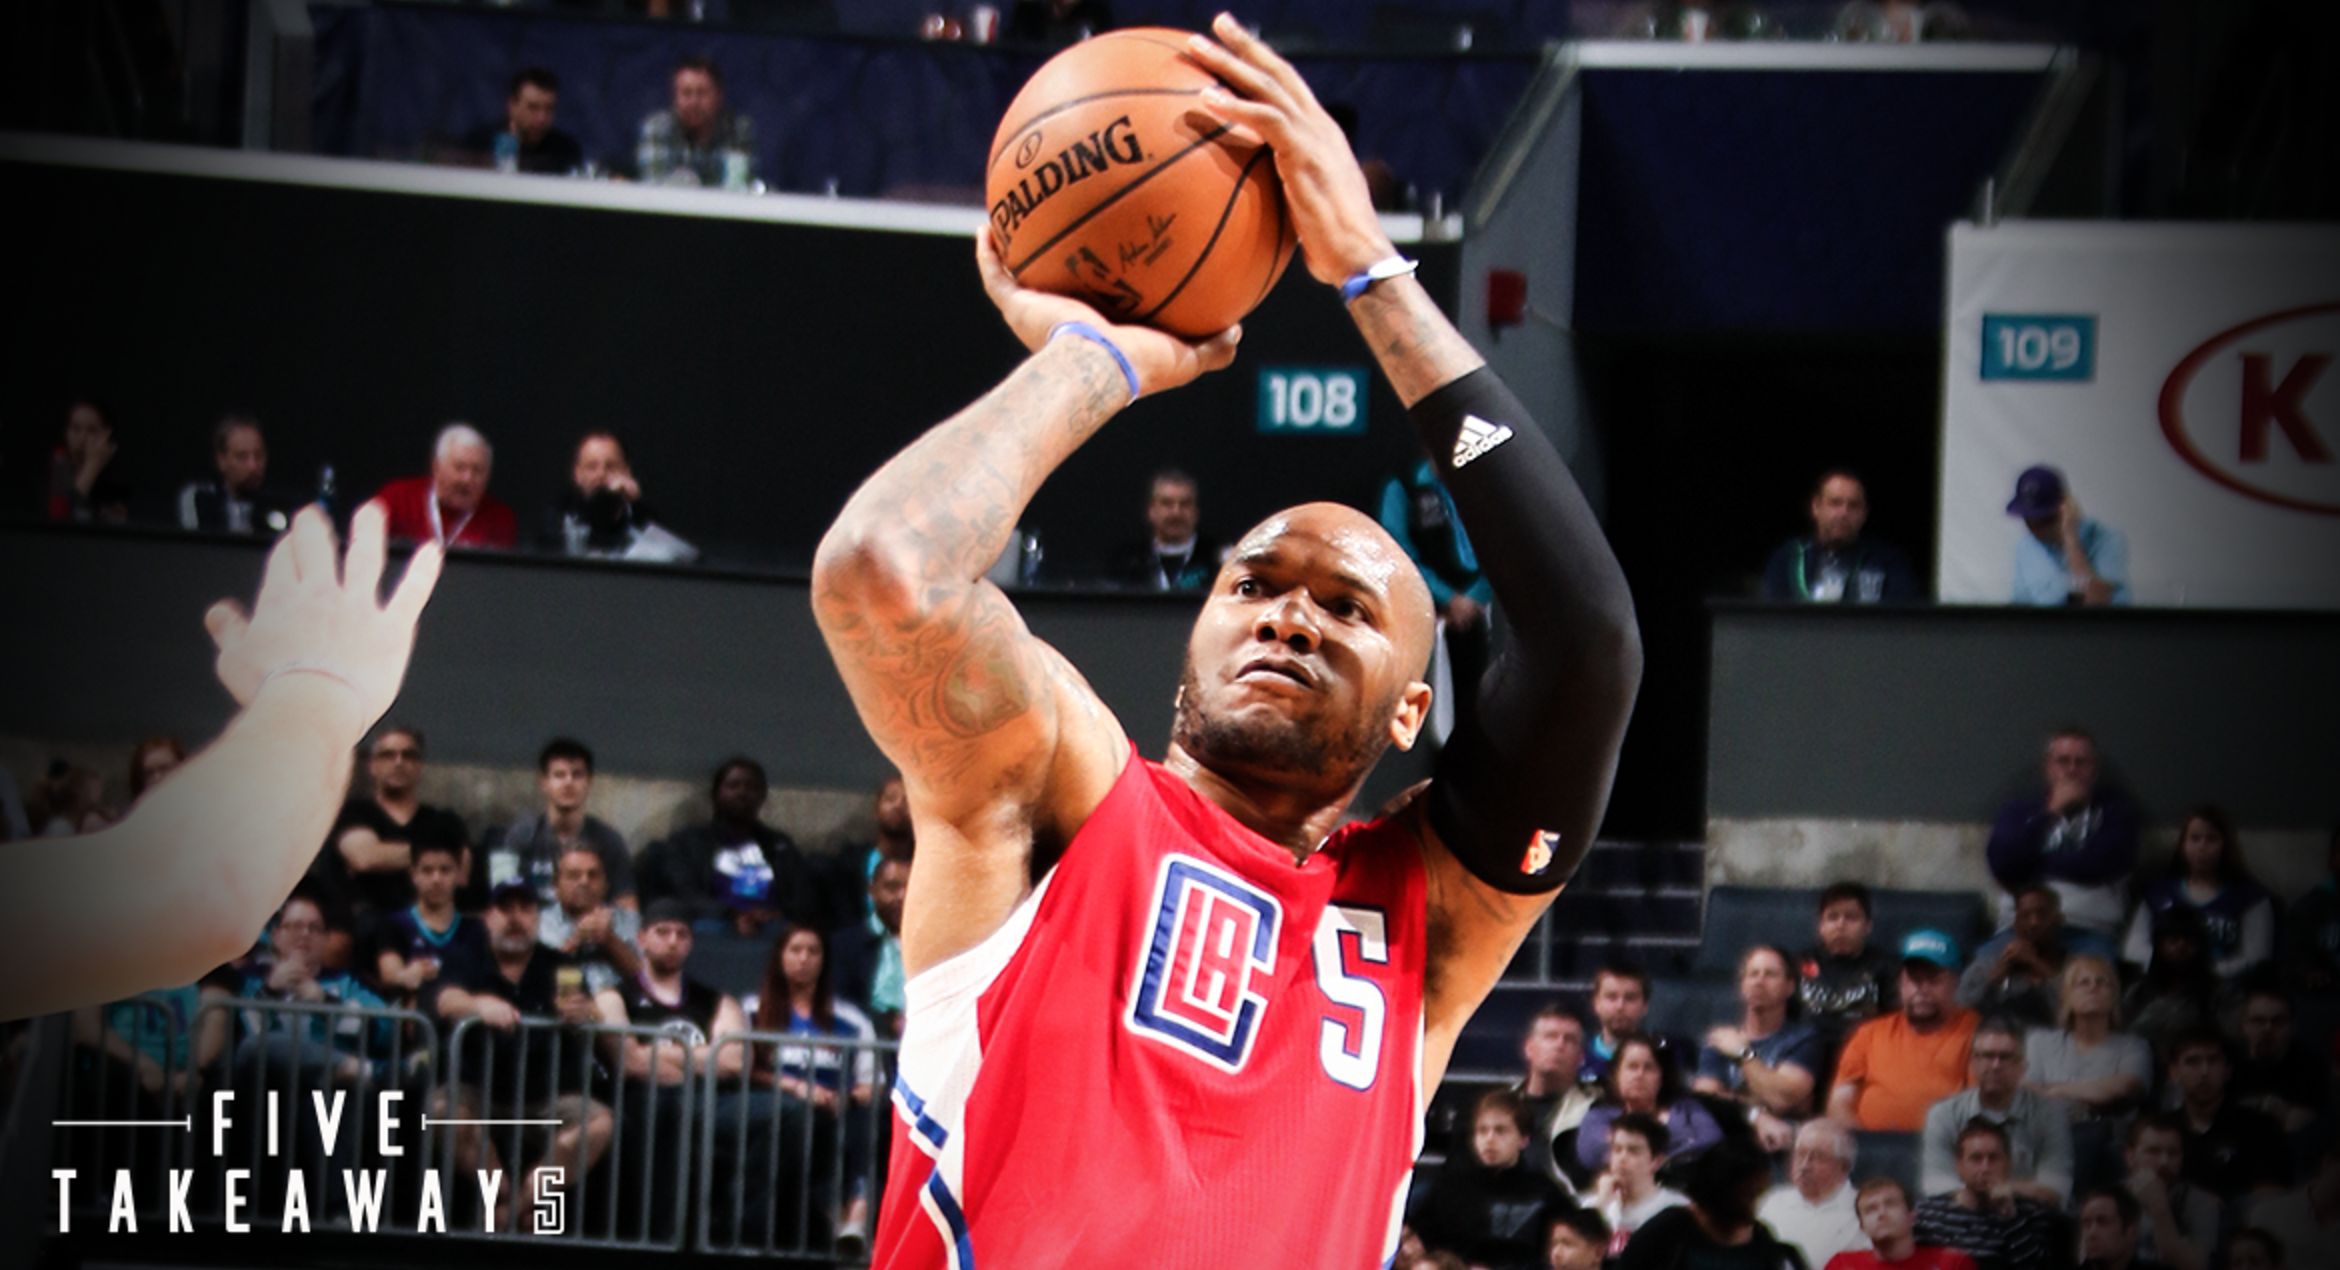 Five Takeaways: Clippers Hold Off Hornets To Win Second Straight